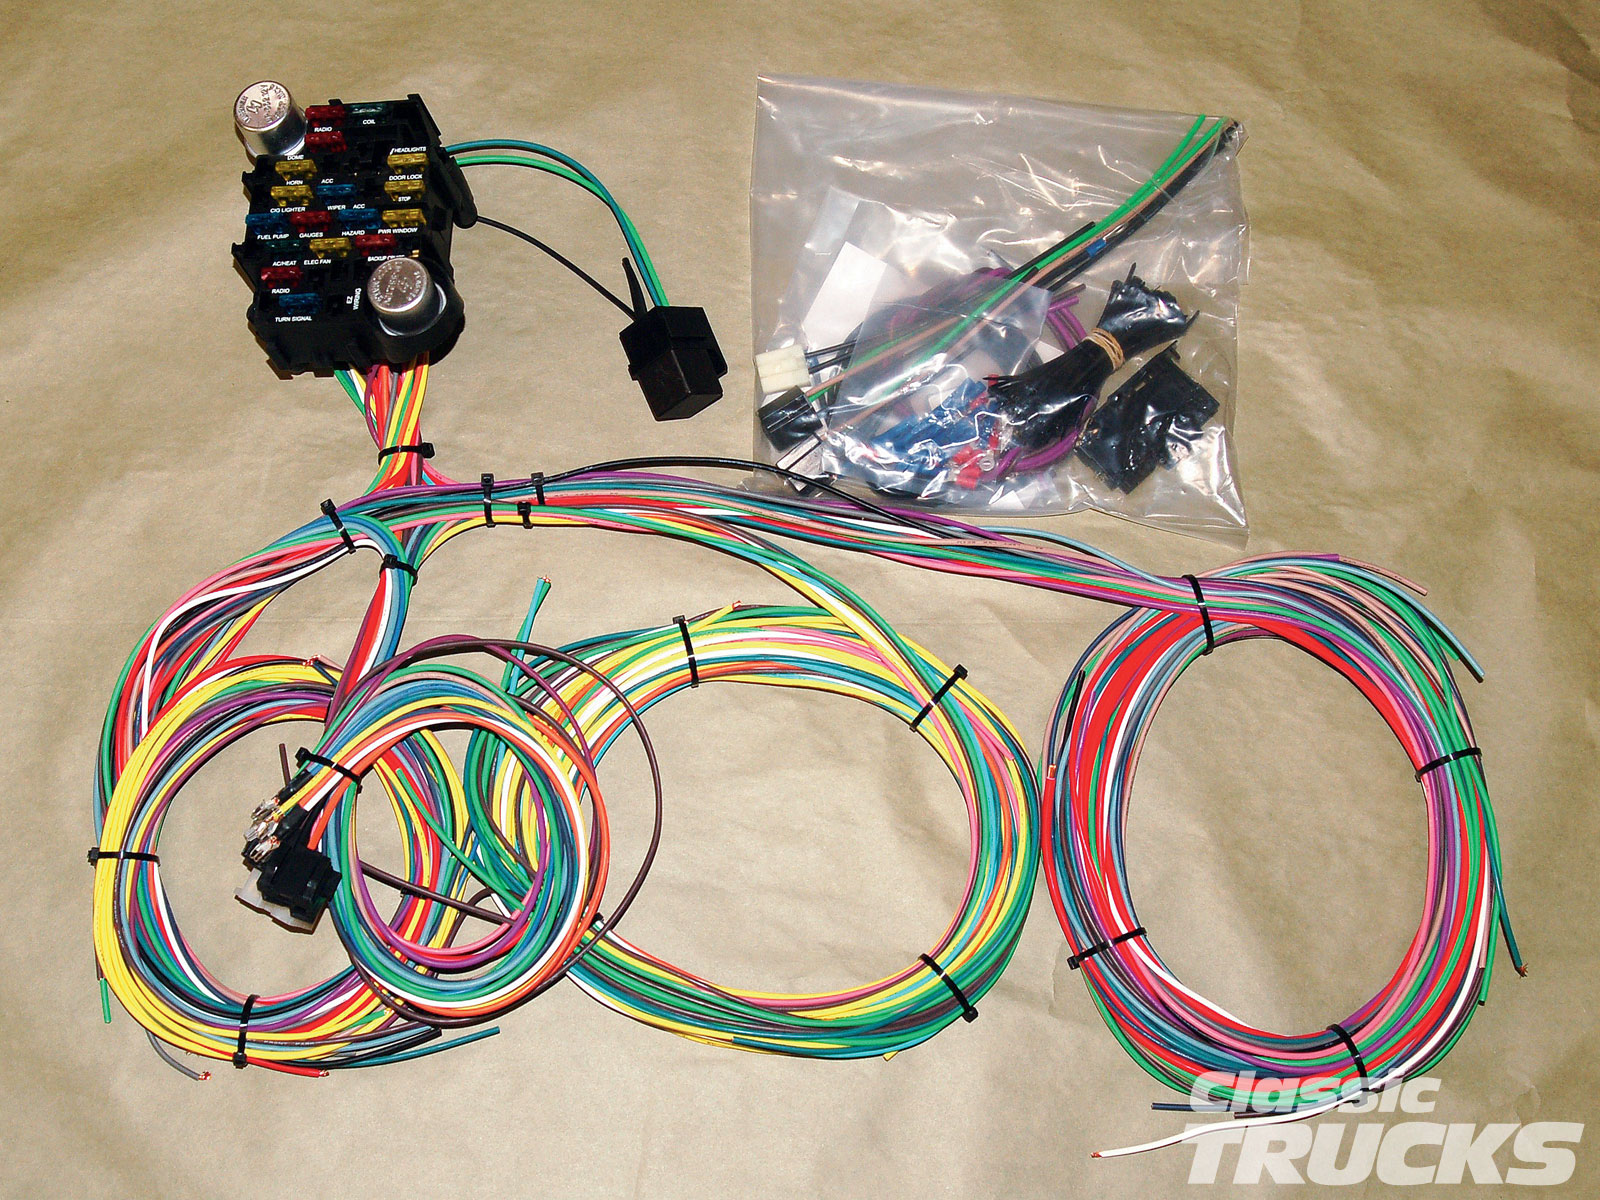 1010clt 02 o aftermarket wiring harness install kit?resize\\\=665%2C499 painless wiring harness australia tamahuproject org painless wiring harness australia at readyjetset.co